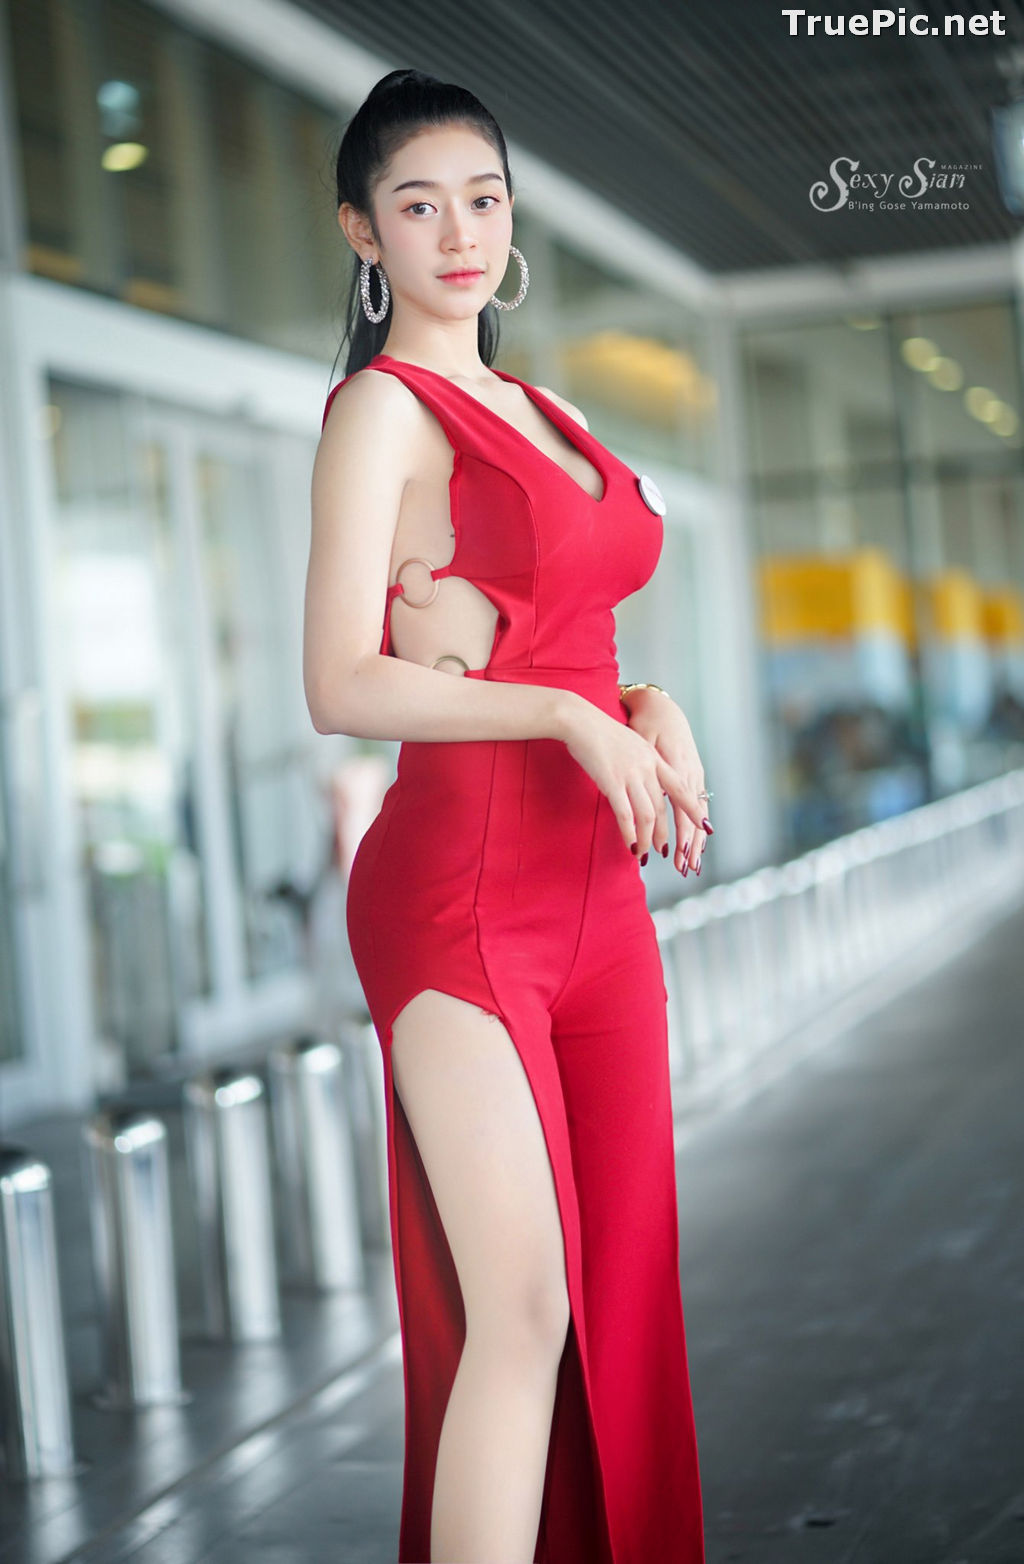 Image Thailand Model - วรารัตน์ มงคลทรง - From Red To Heart - TruePic.net - Picture-6